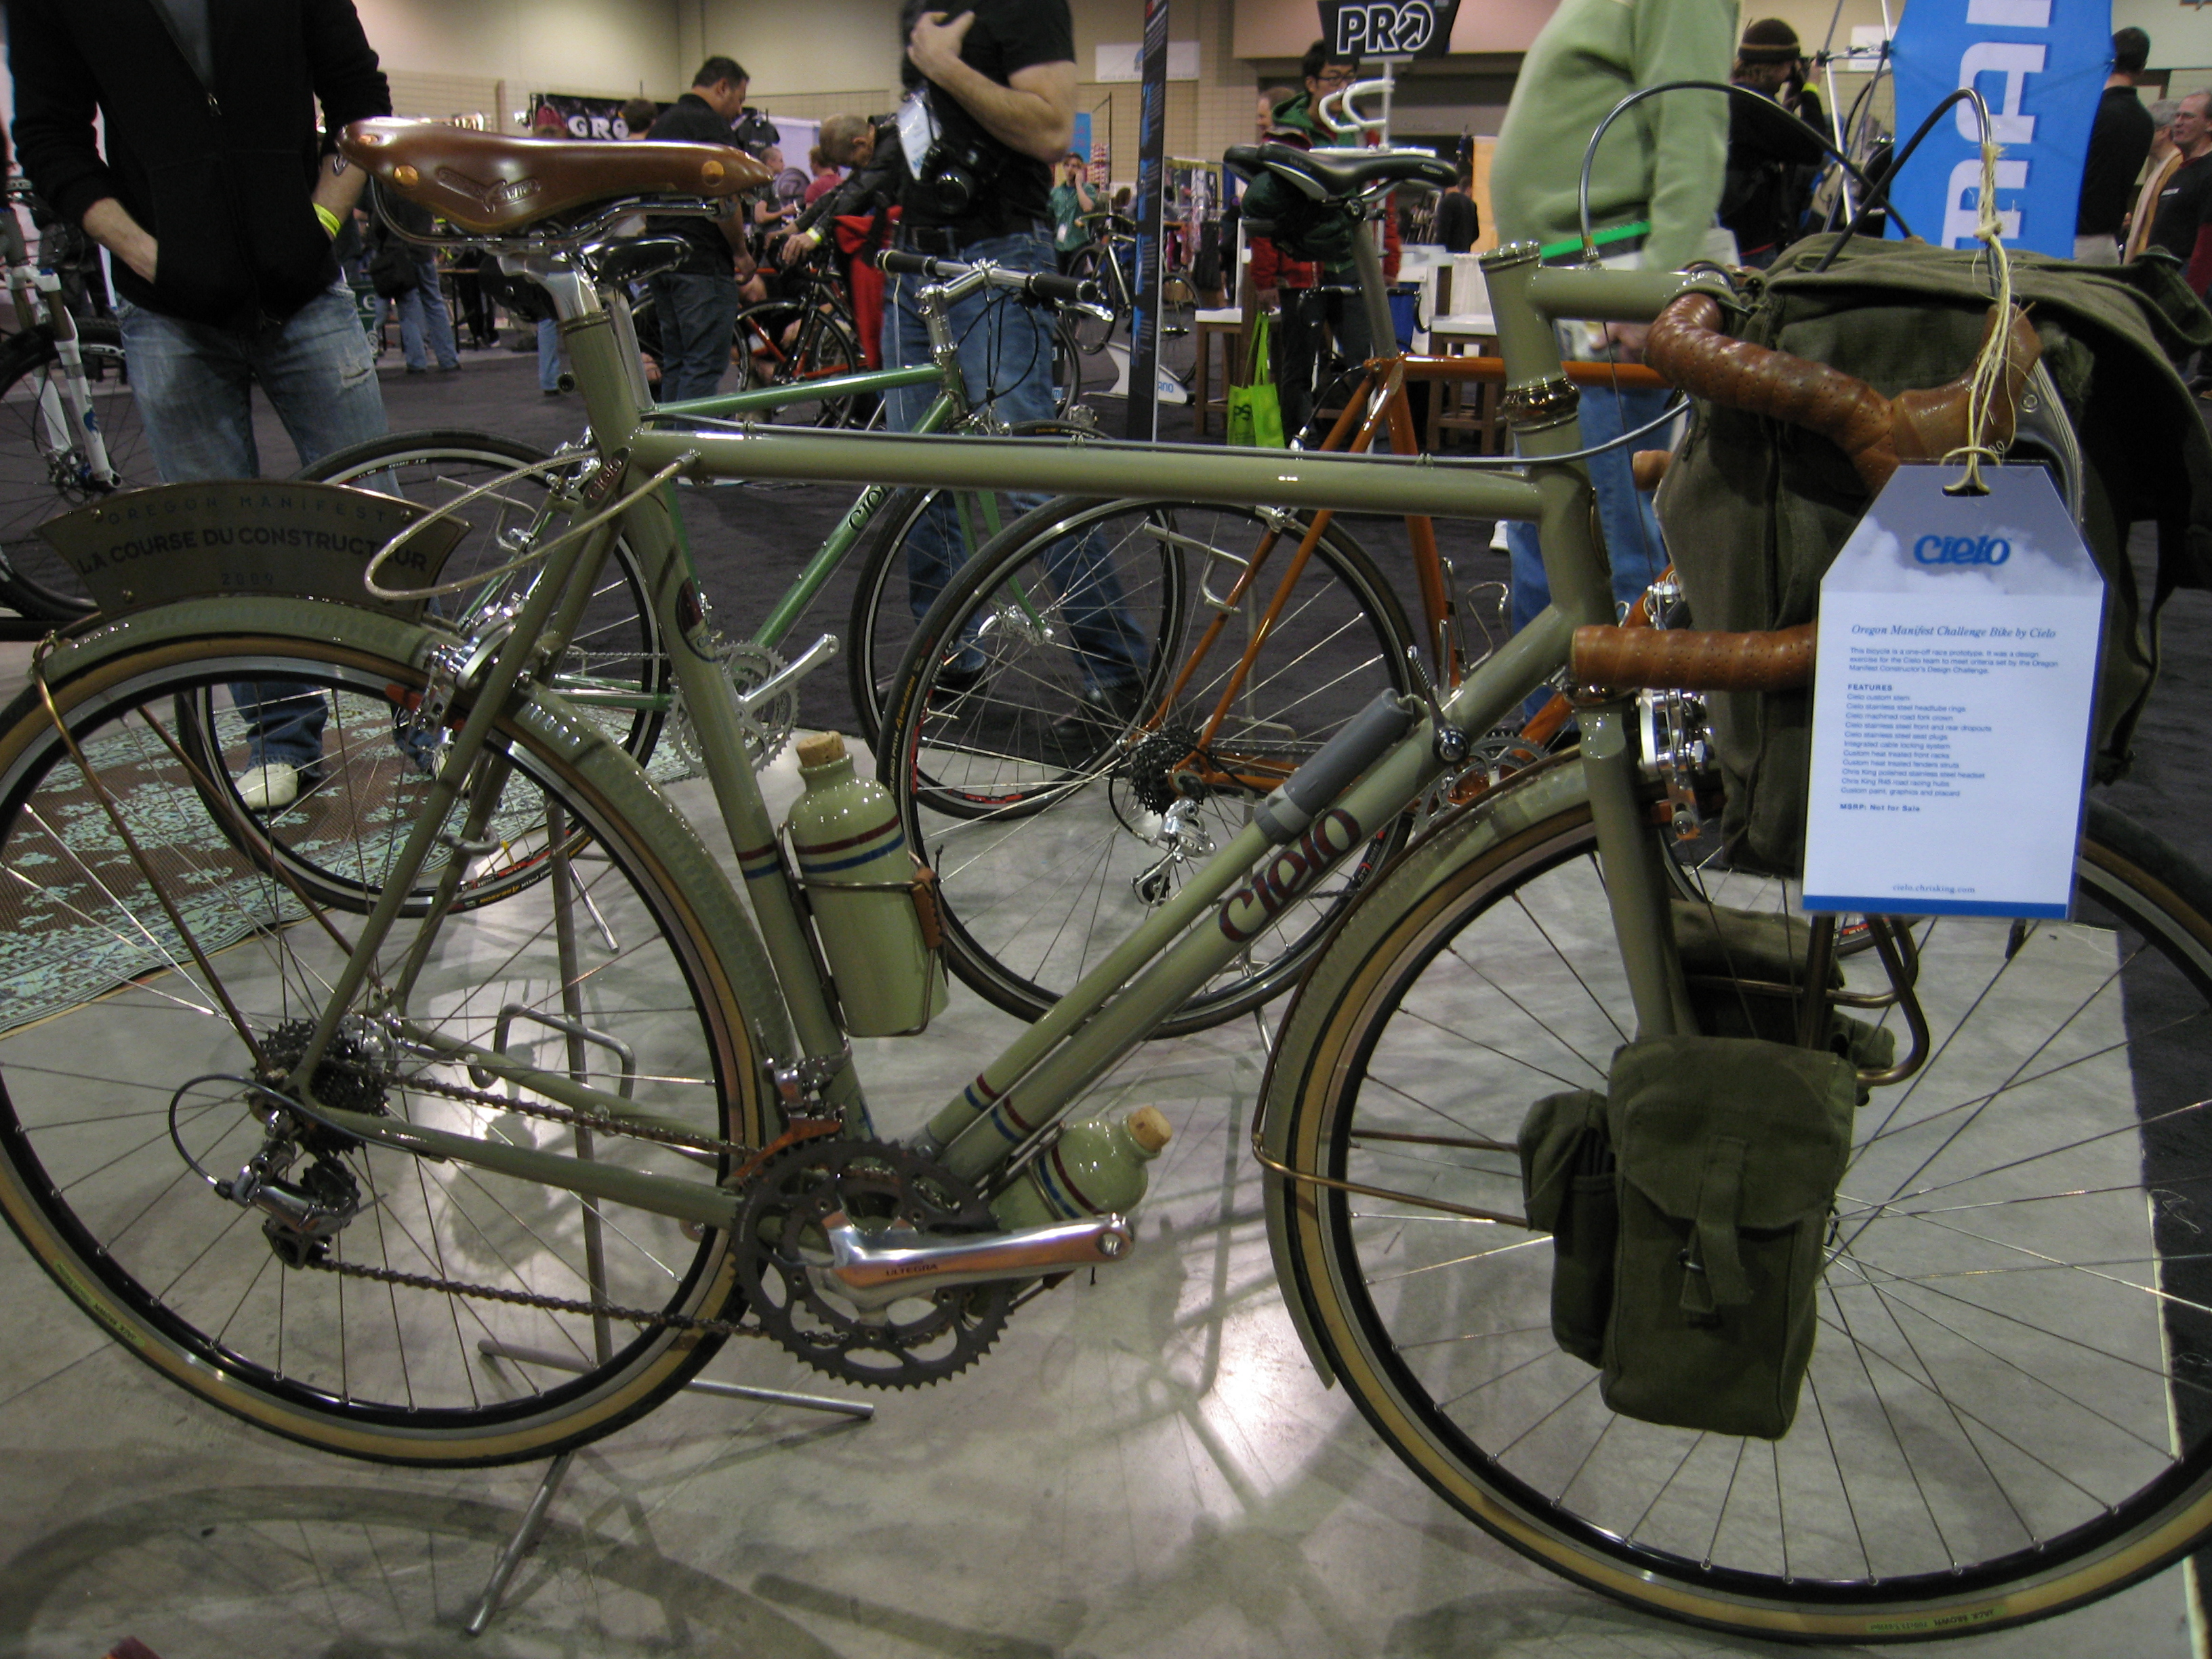 this trend toward practical utilitarian bikes was prevalant throughout the entire show whether you were looking for a stylish commuter here from cielo